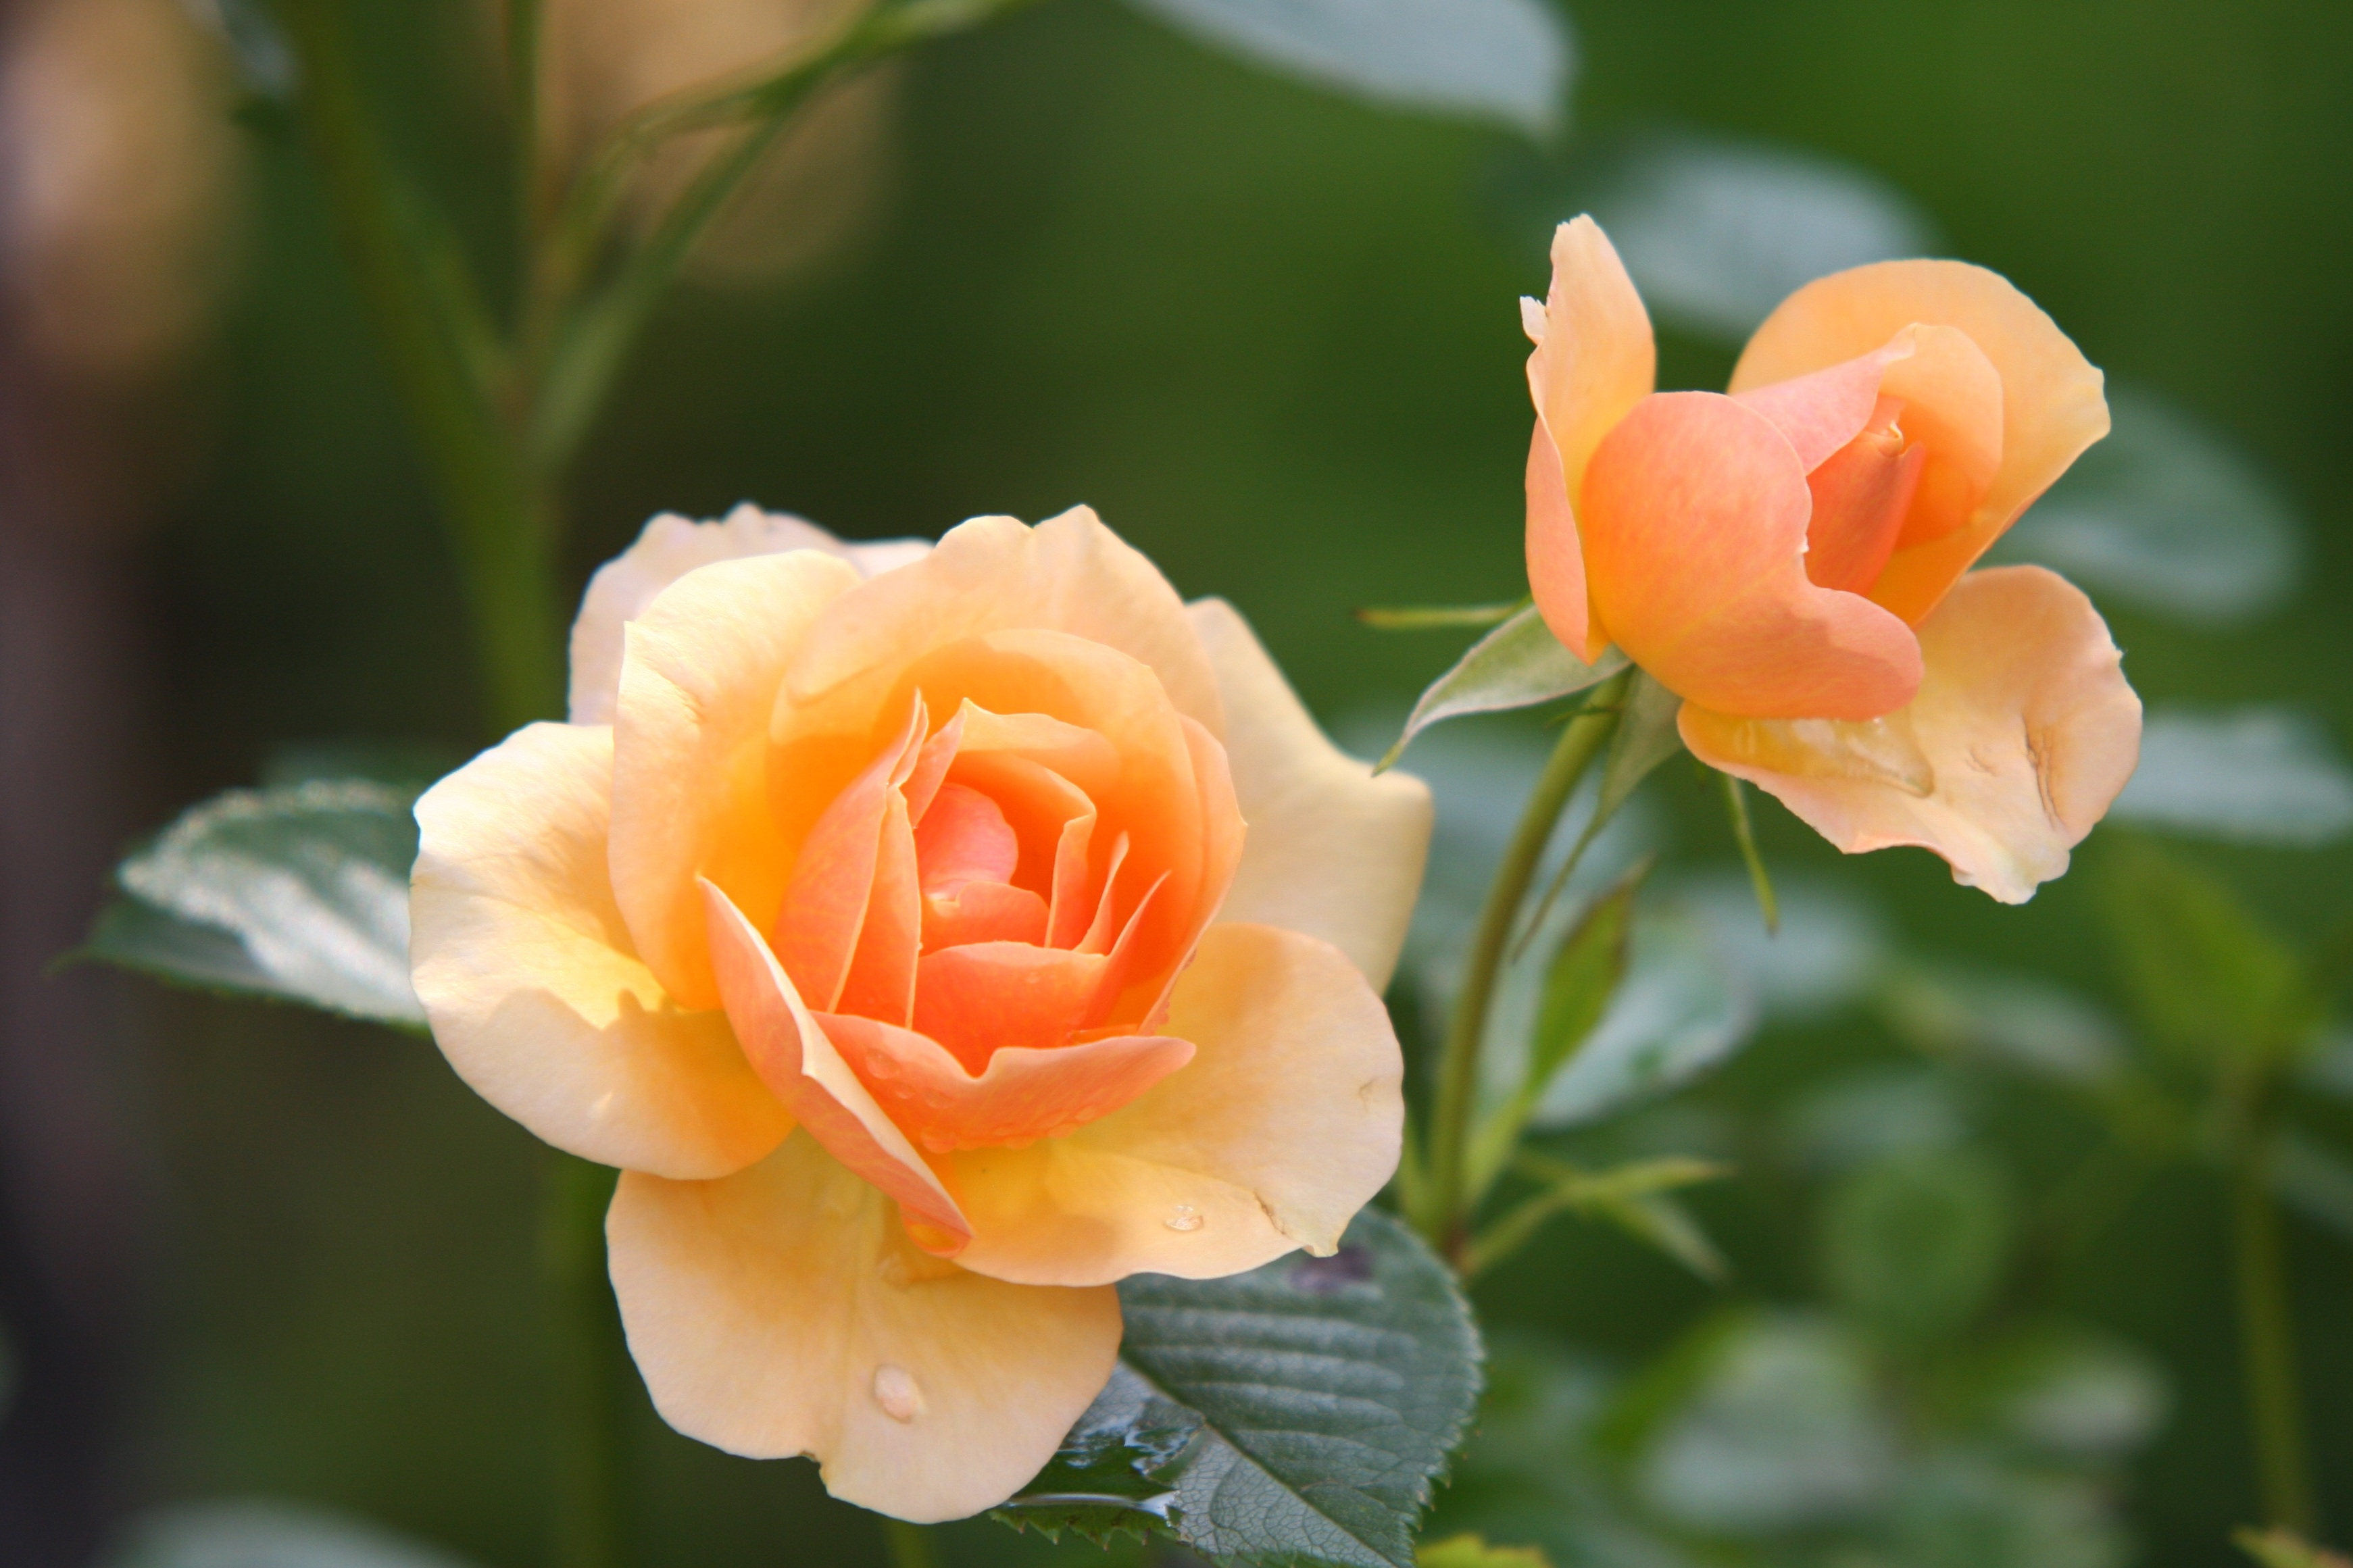 rose-flower-blossom-bloom-39517.jpeg (3482×2321)